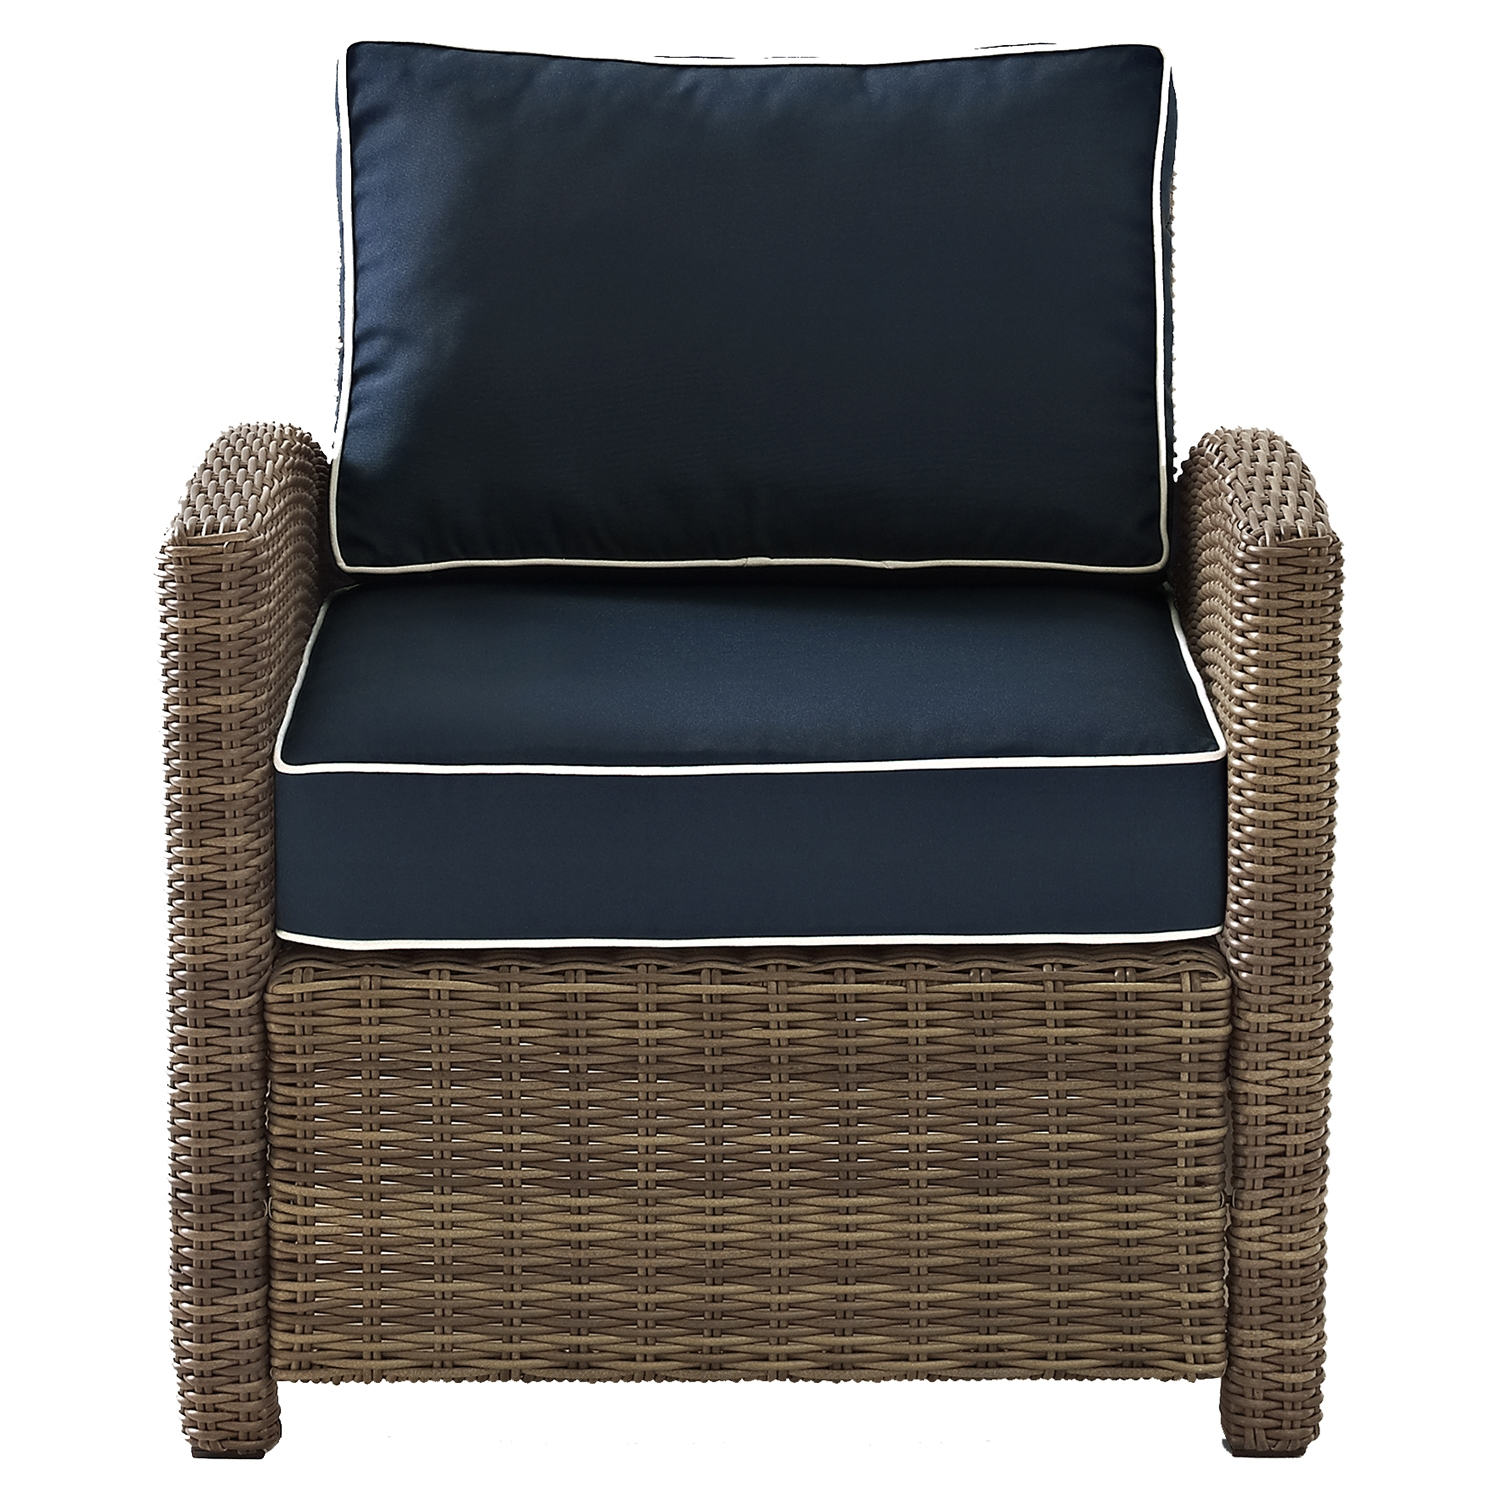 Bradenton Outdoor Wicker Arm Chair - Navy Cushions - CROS-KO70023WB-NV